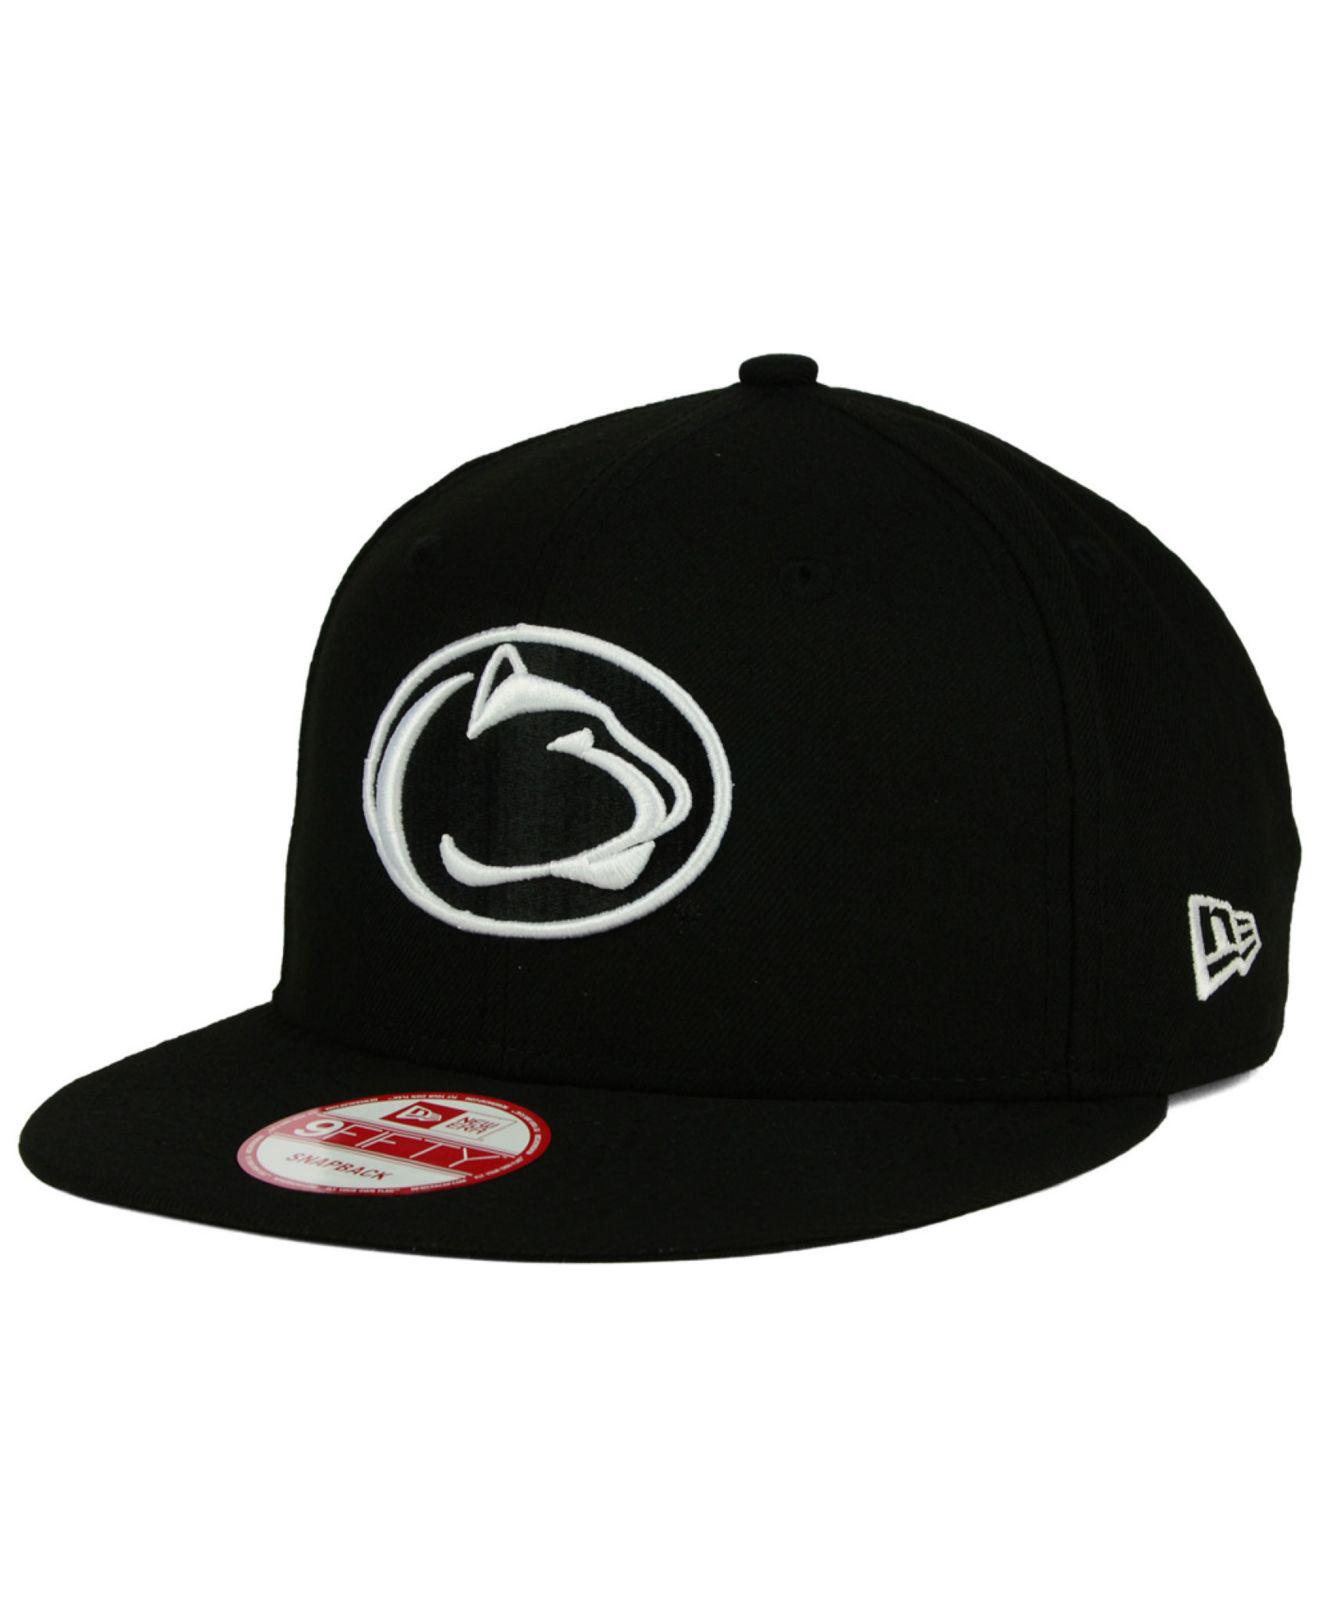 065af47c80bf43 KTZ - Penn State Nittany Lions Ncaa Black White Fashion 9fifty Snapback Cap  for Men -. View fullscreen